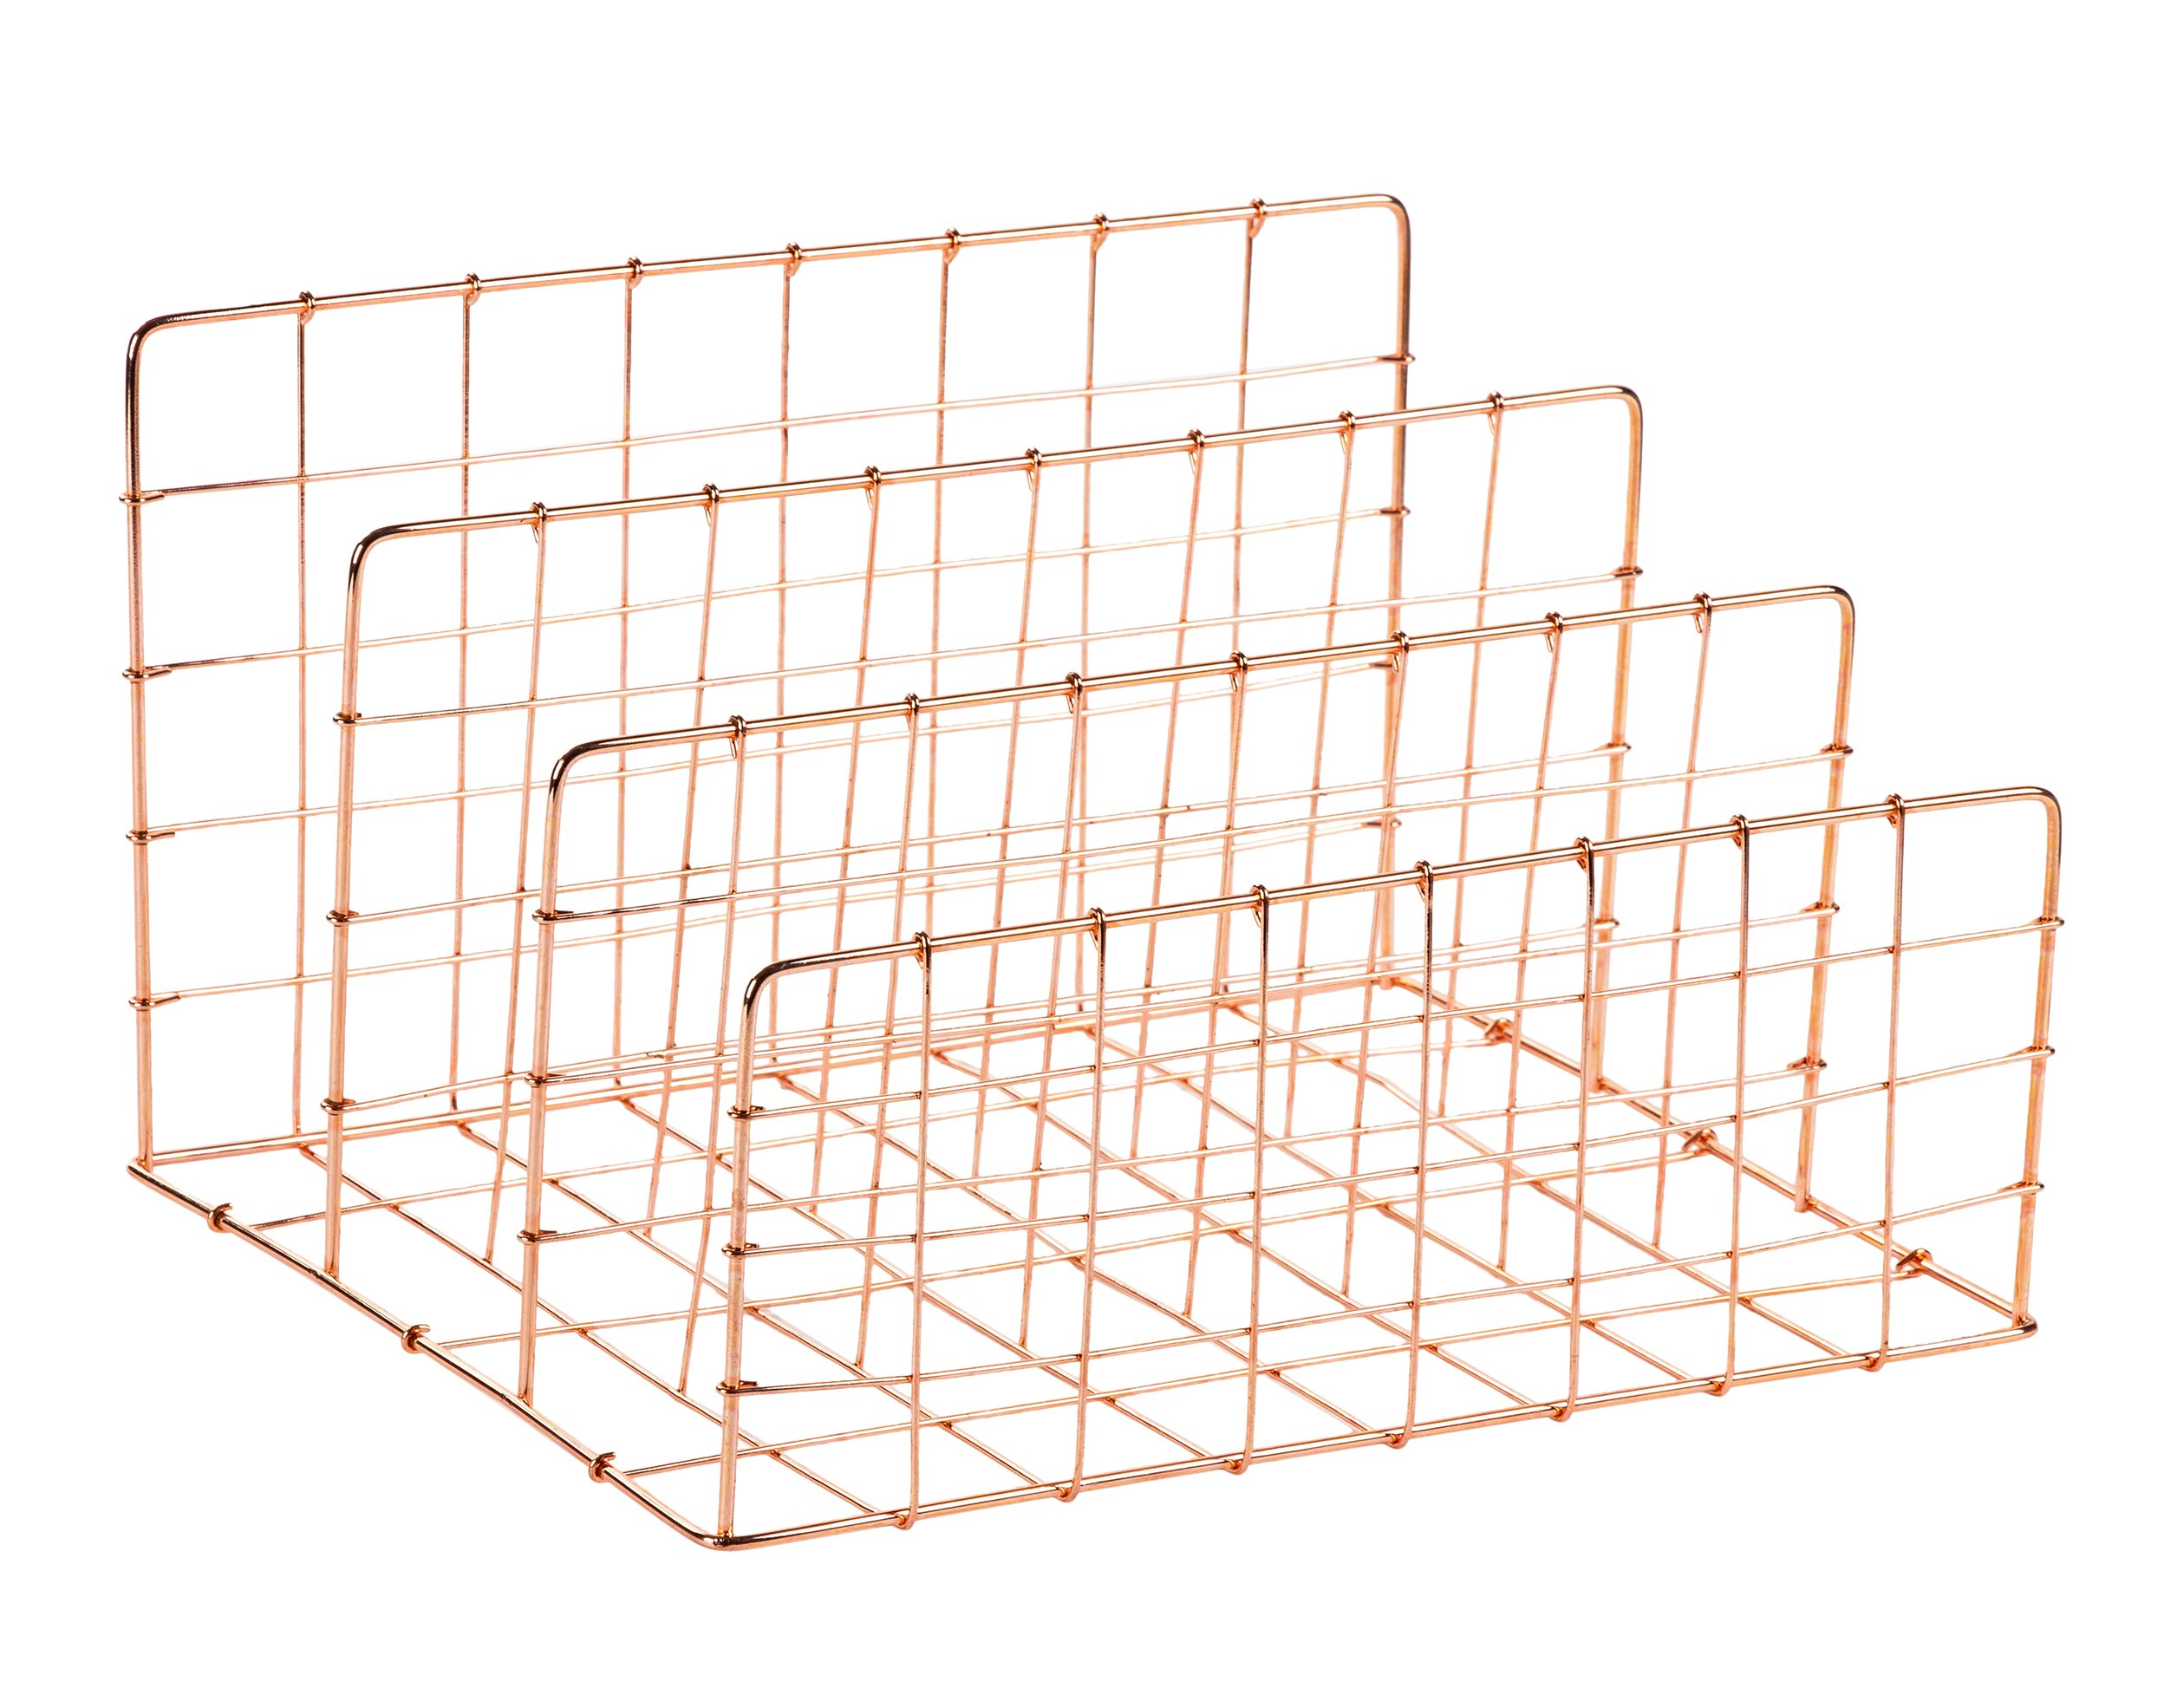 Desktop File Organizer - 3 Vertical Compartments Wire Metal Mesh Organizer, Letter Mail Sorter, Rose Gold, 11.6 x 6.75 x 9.2 Inches